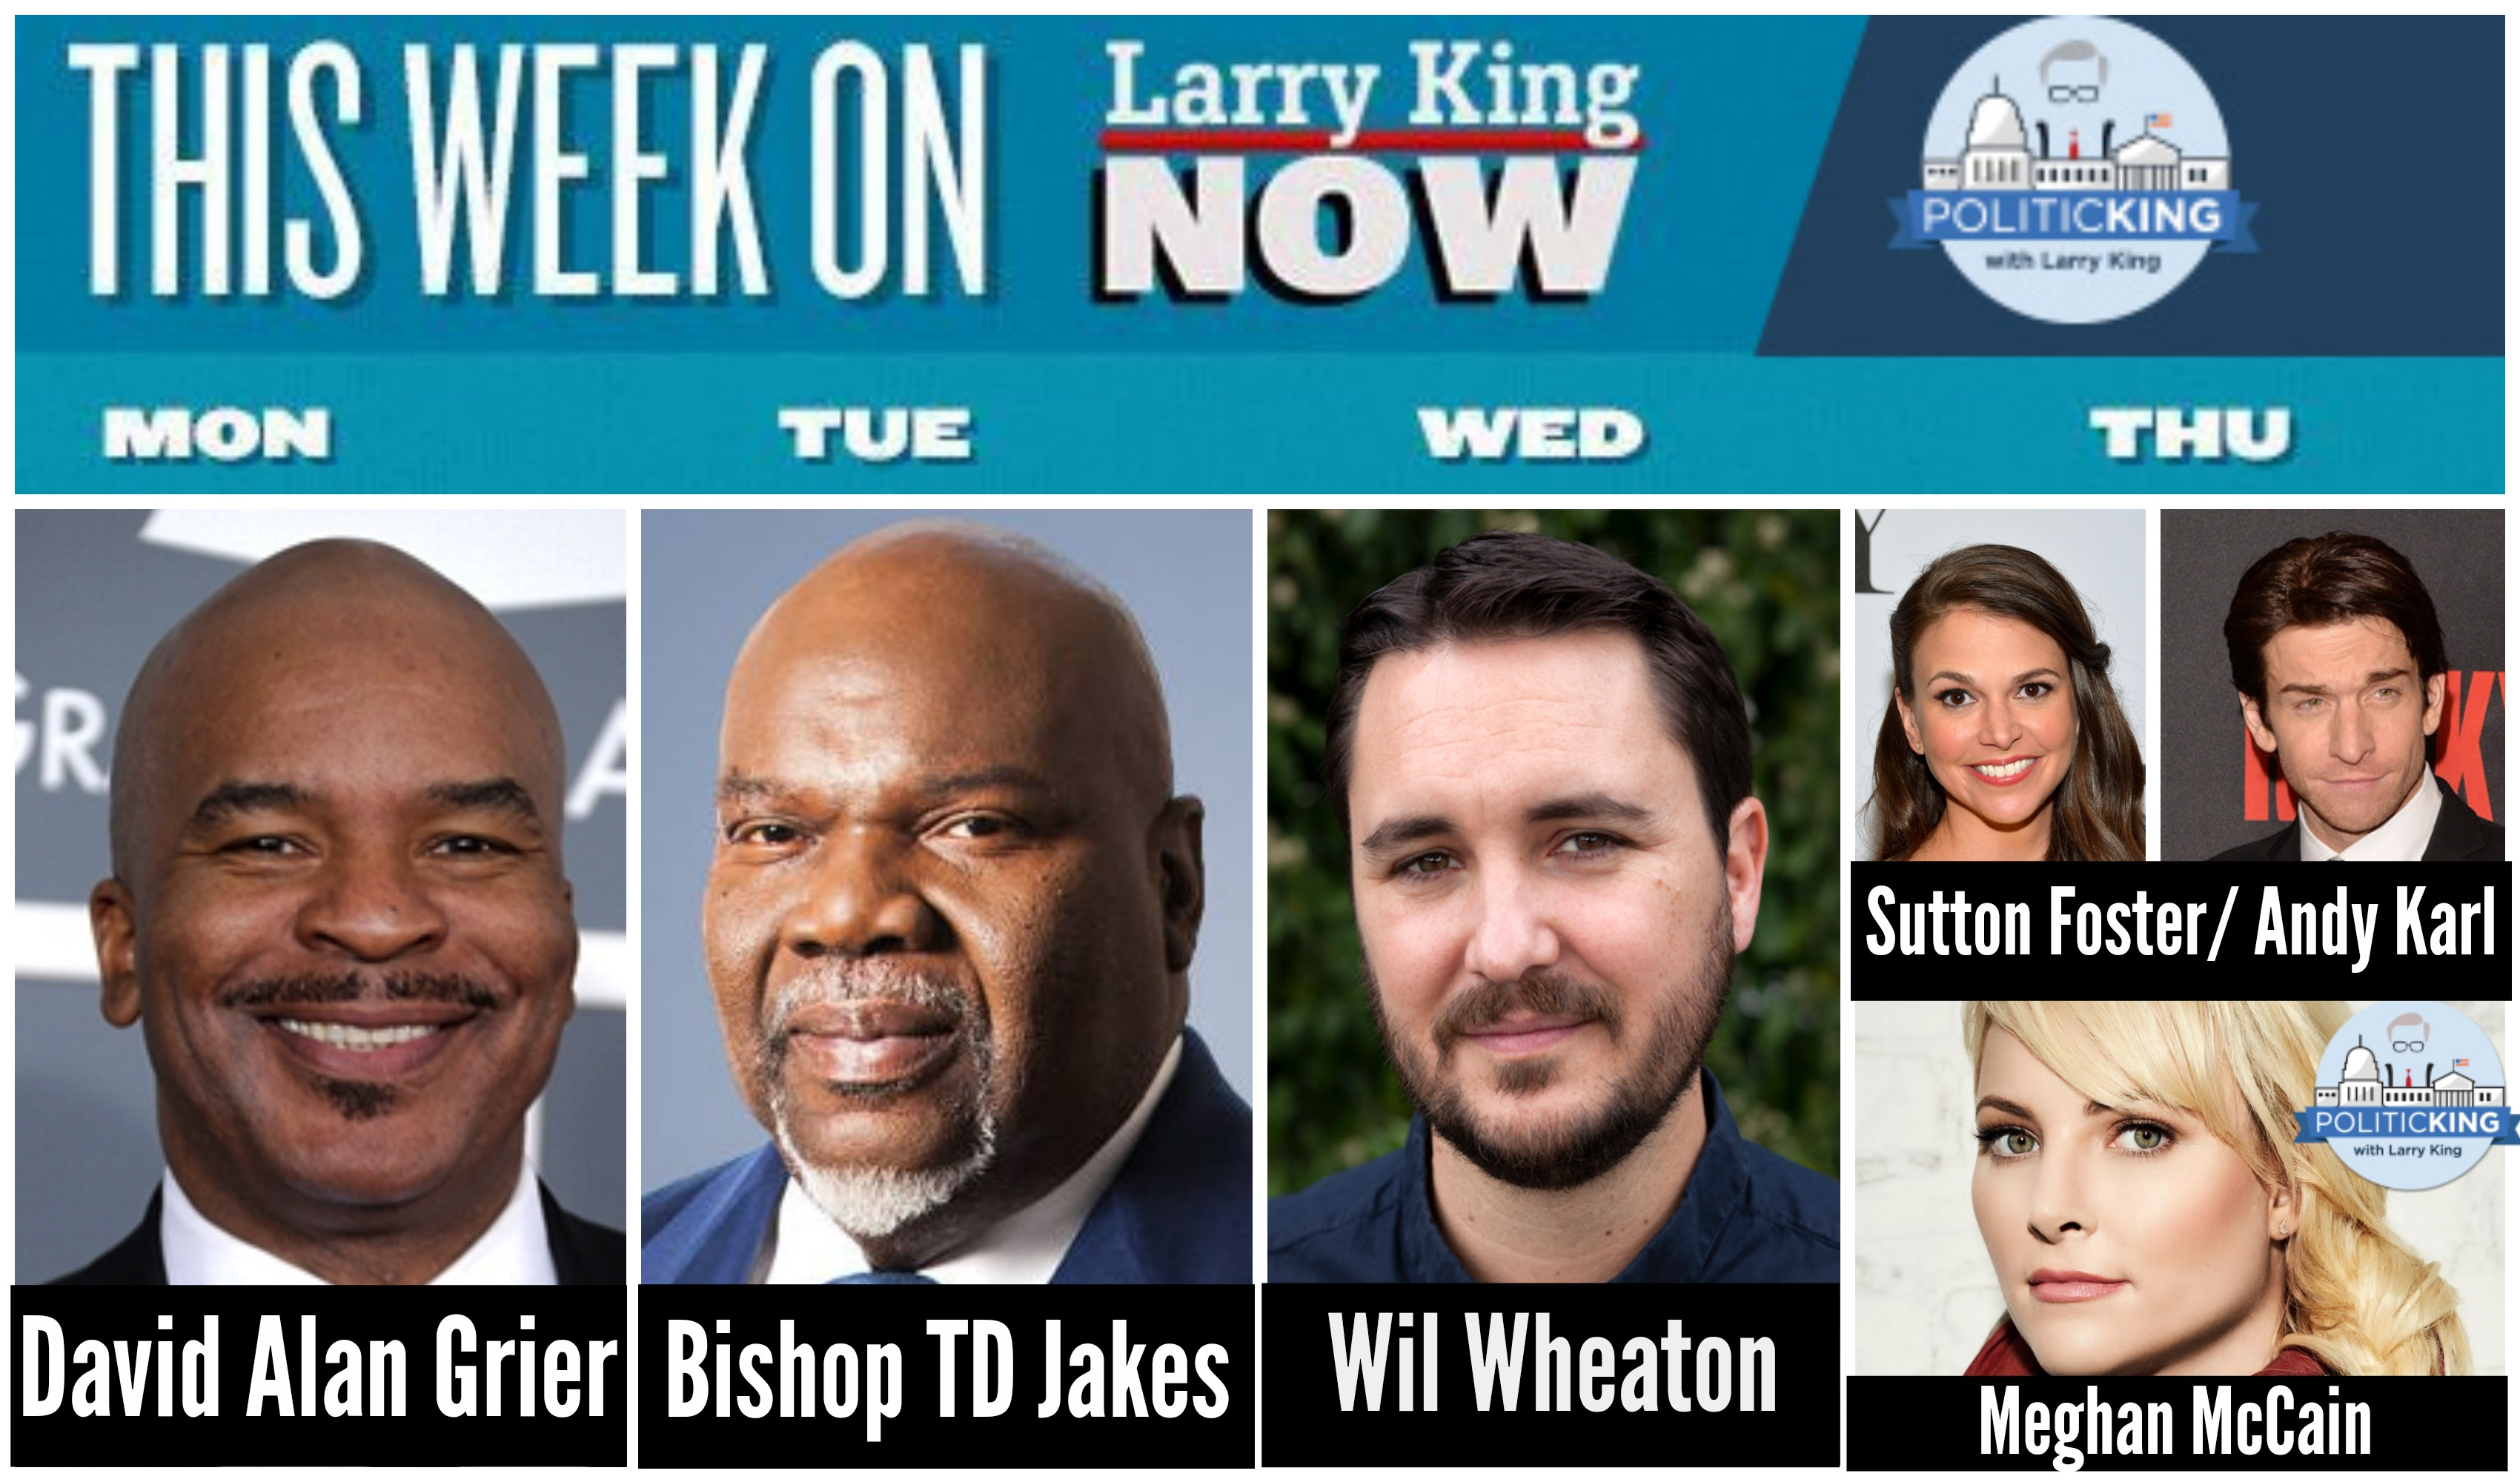 This Week on Larry King Now & PoliticKING - May 19 2014